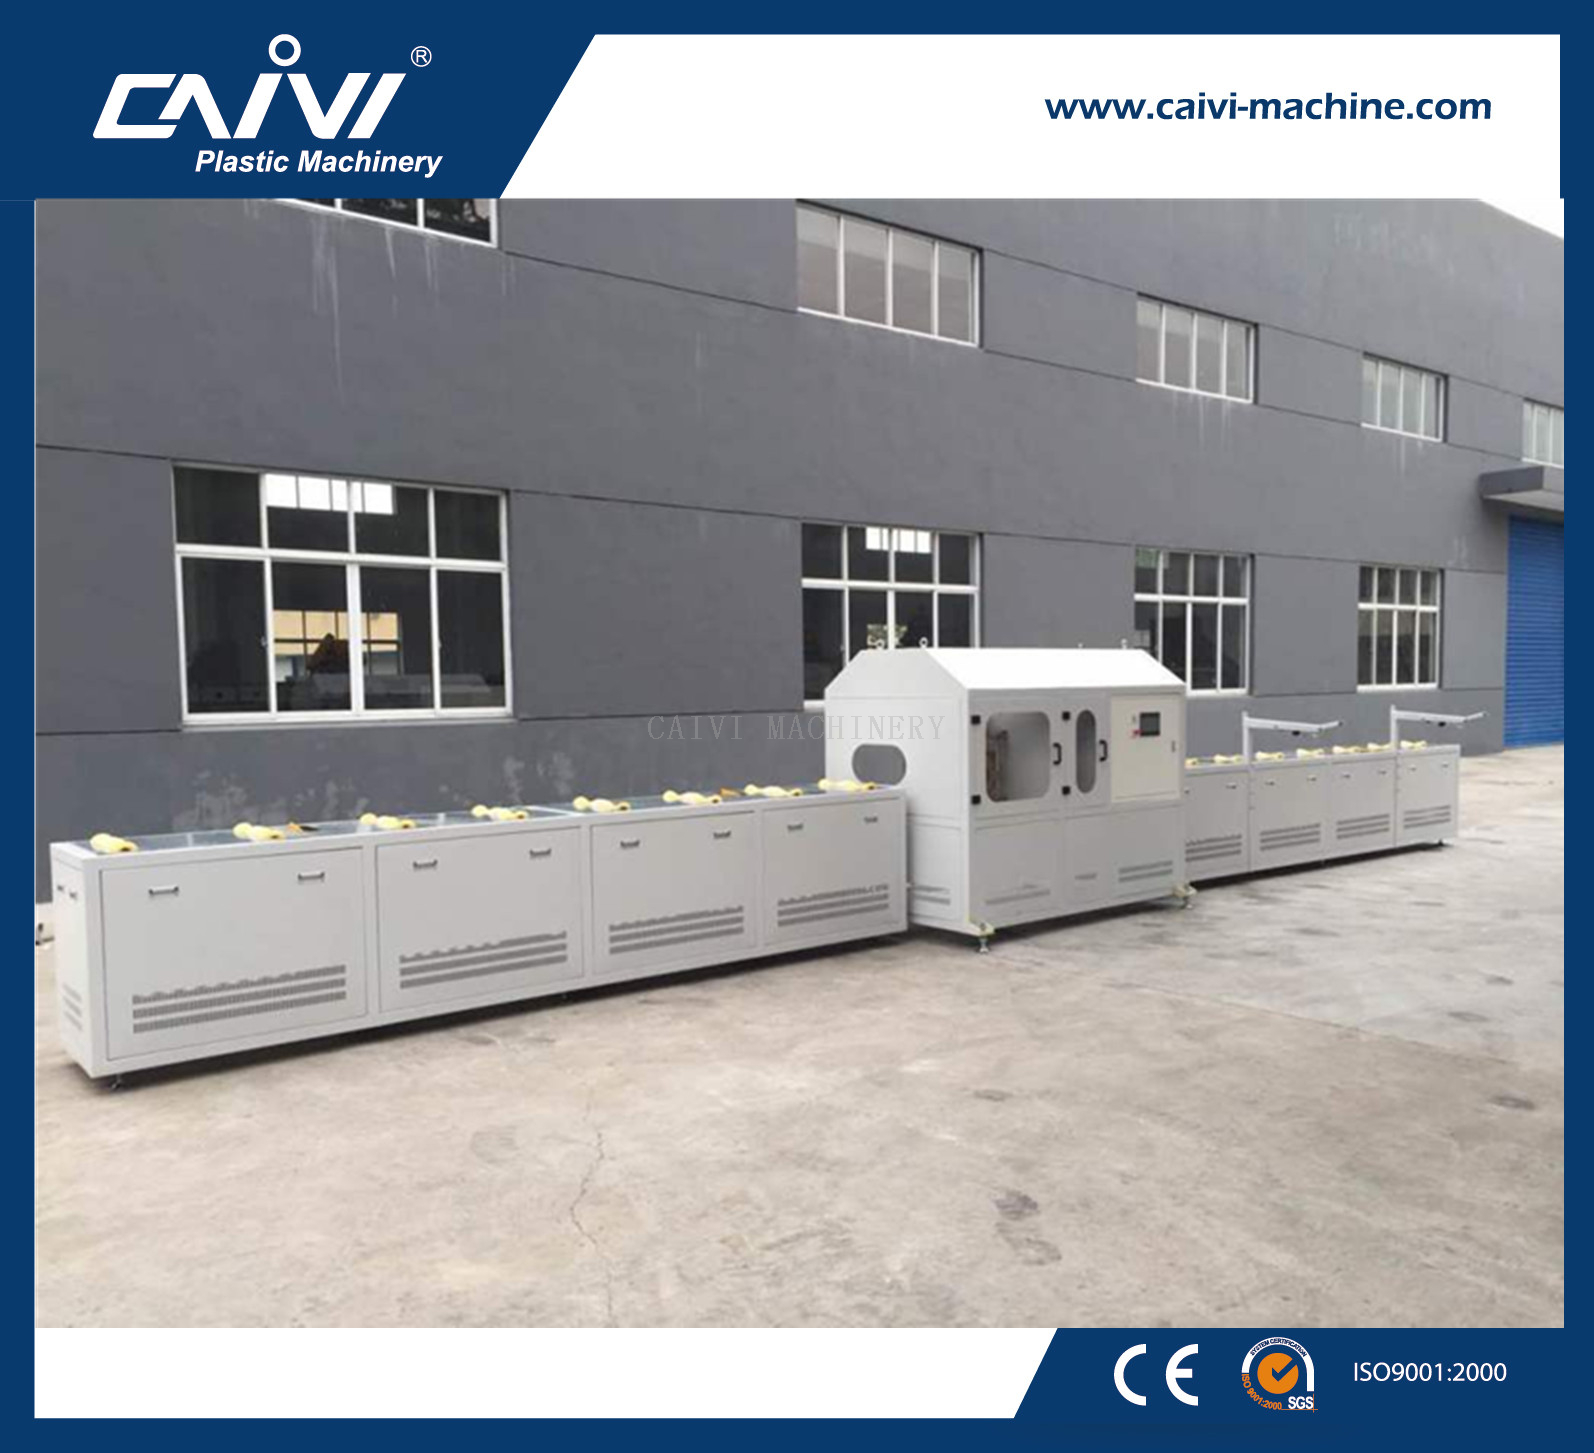 PVC/PE Pipe Slotting machine